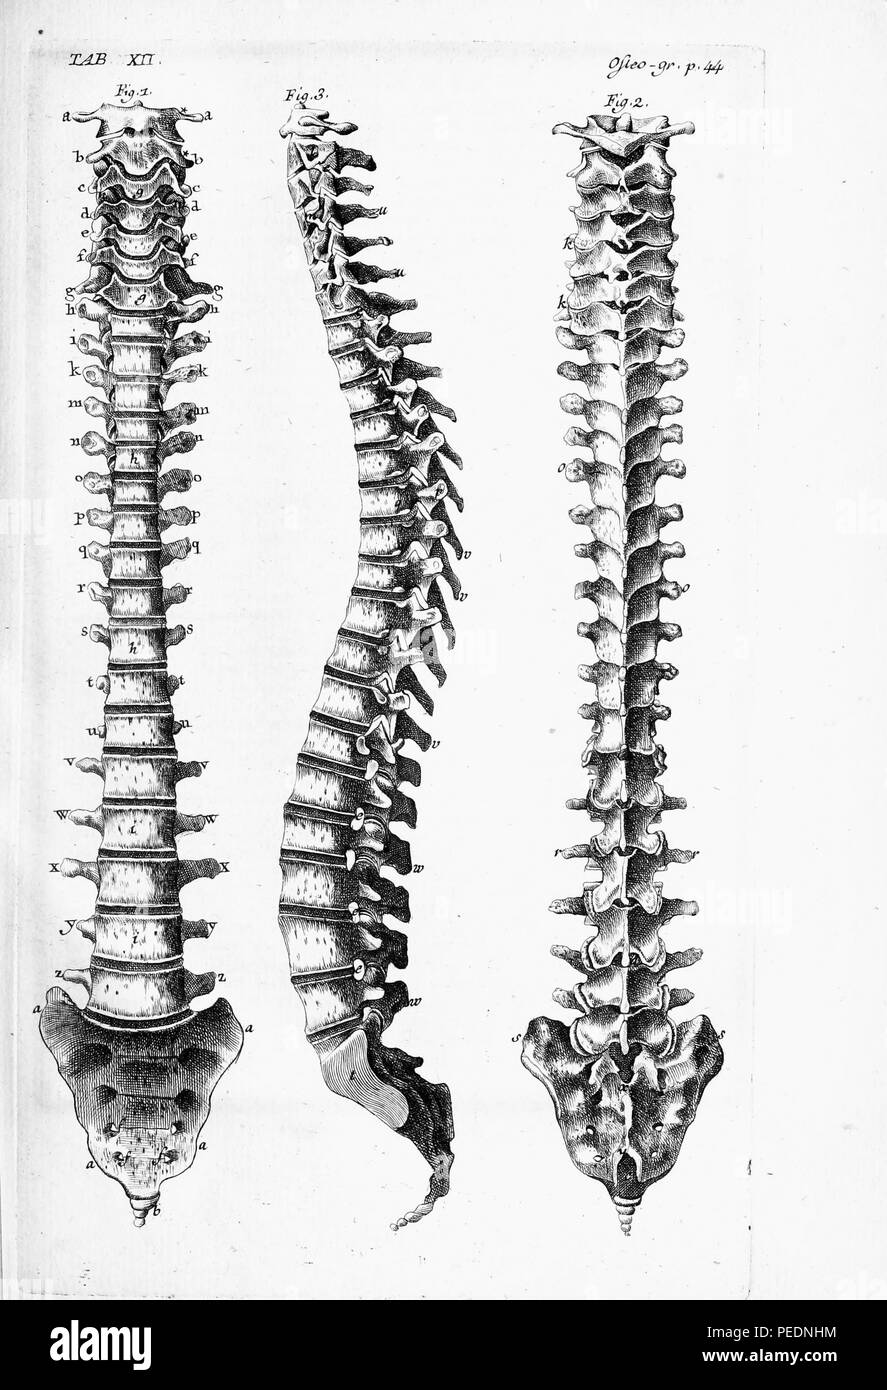 medium resolution of black and white print of the human spine from three angles 1 the front 2 the back and 3 the side with letters indicating individual vertebrae 1825